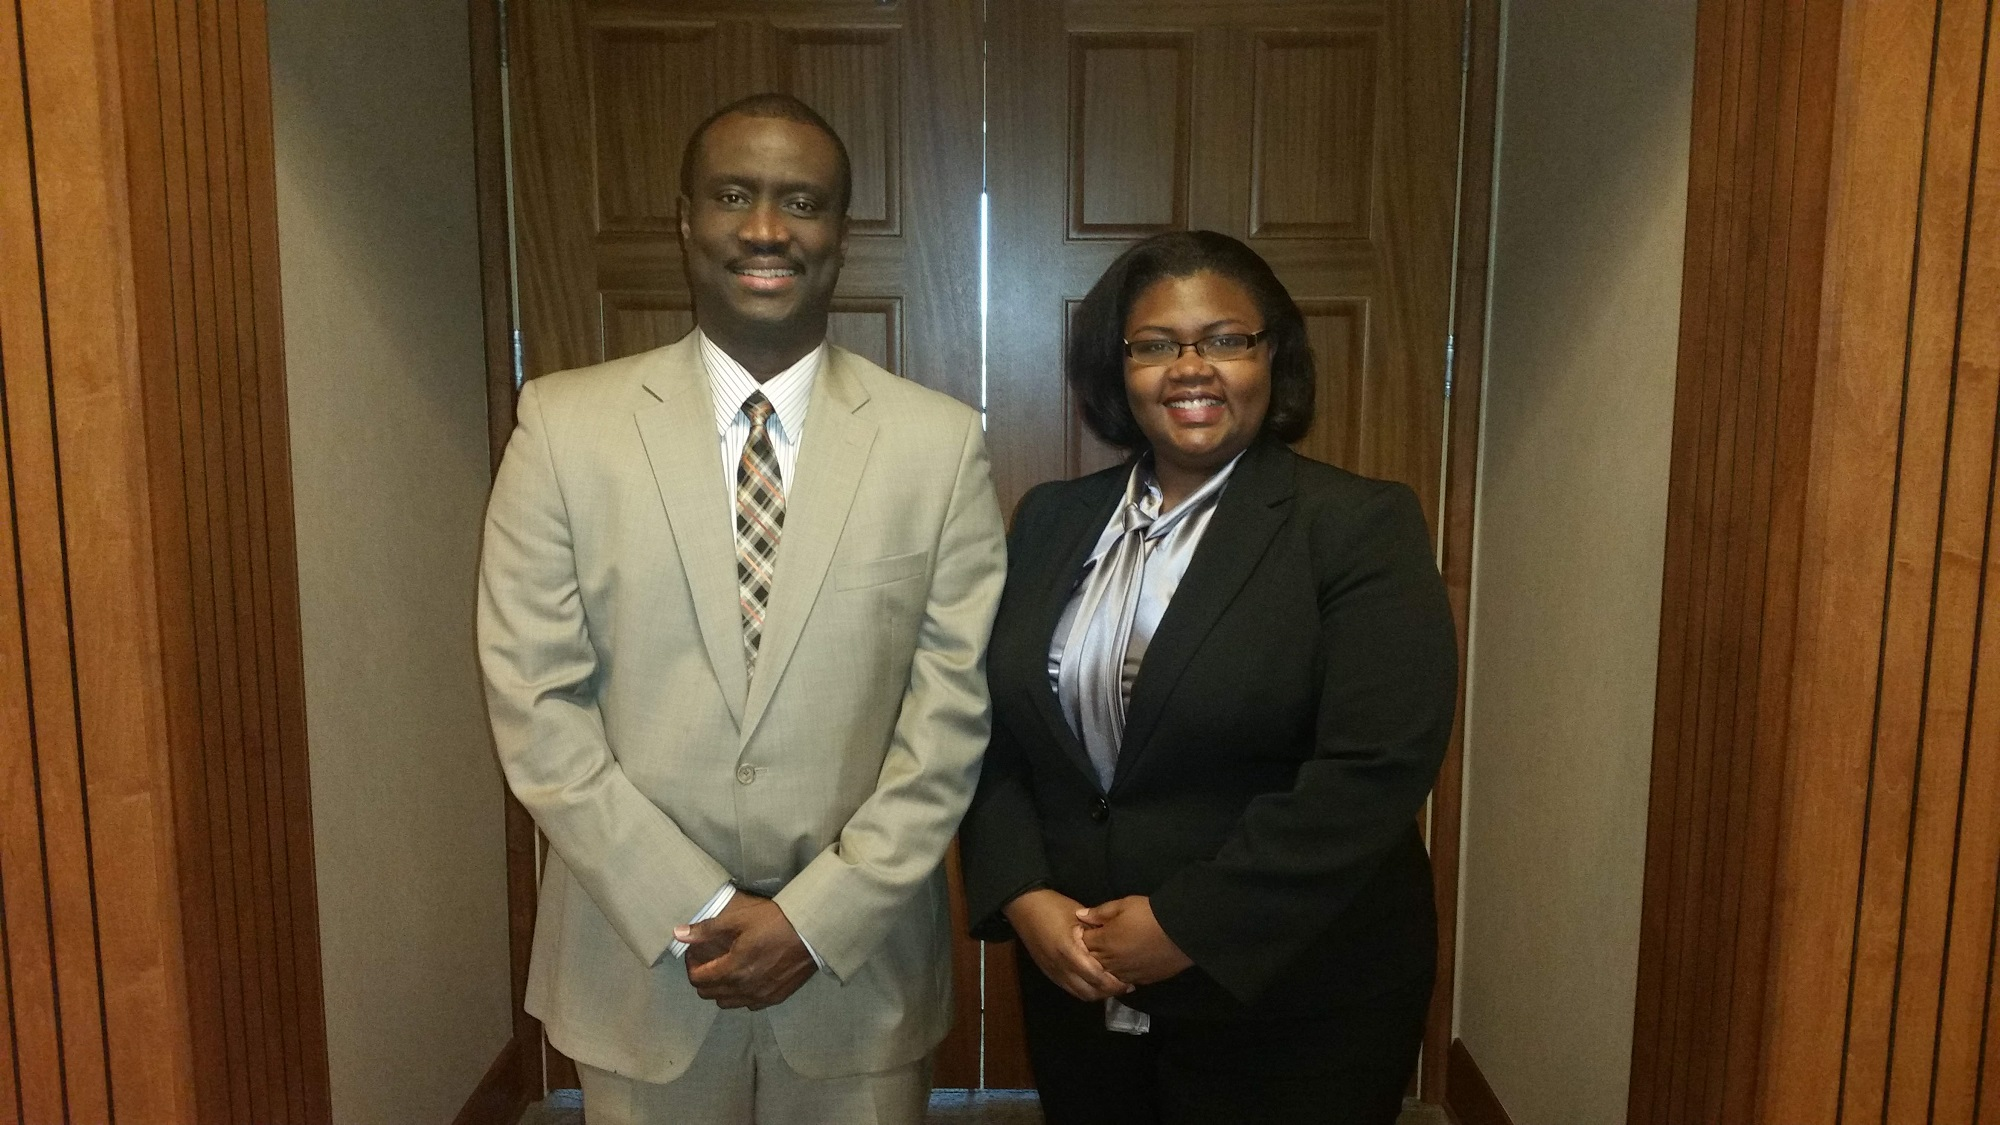 Dr. Larry Hobson and Shaneeta Johnson